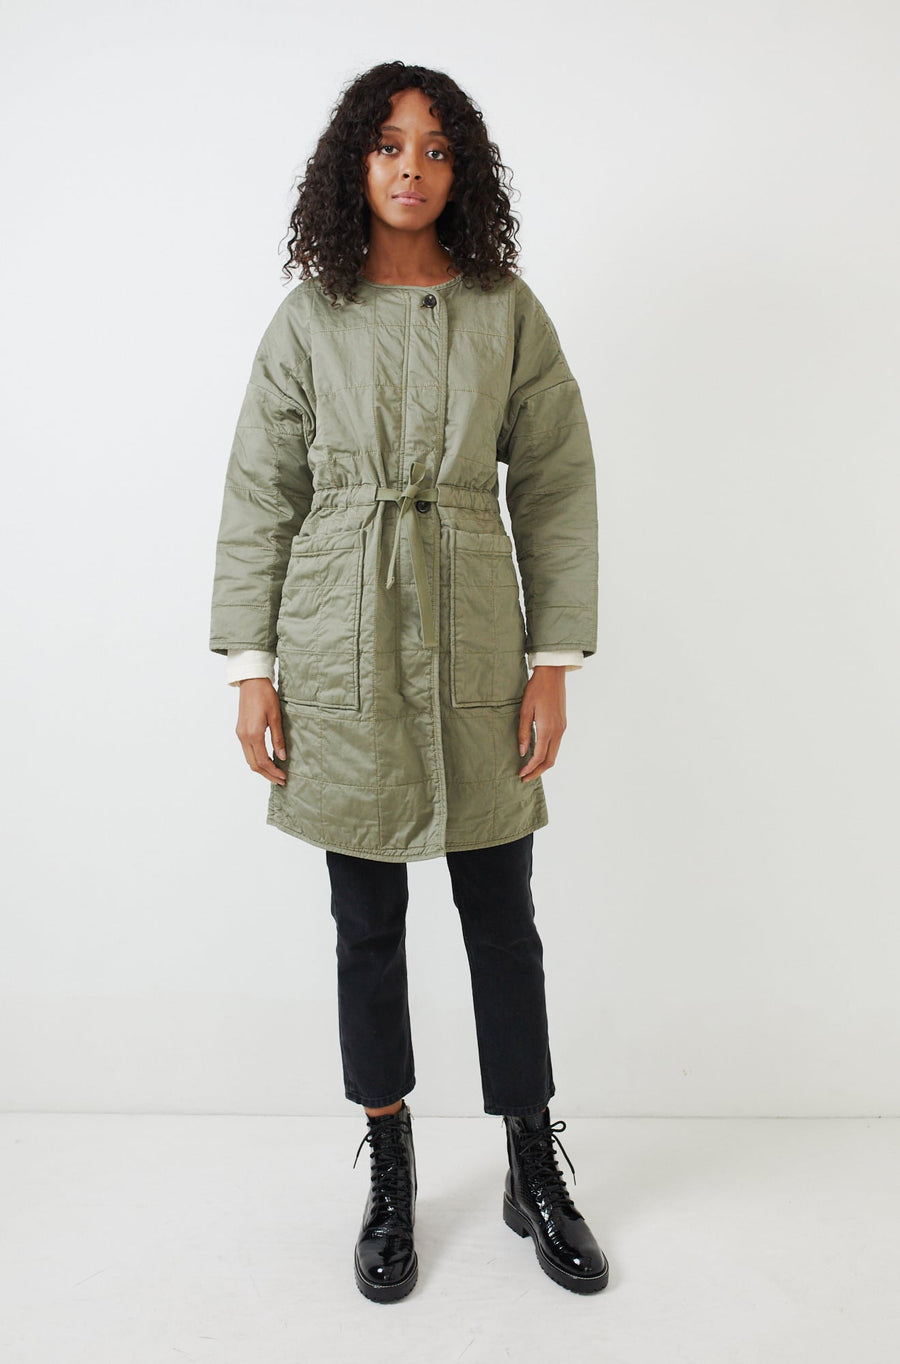 Christopher Quilted Coat-military green